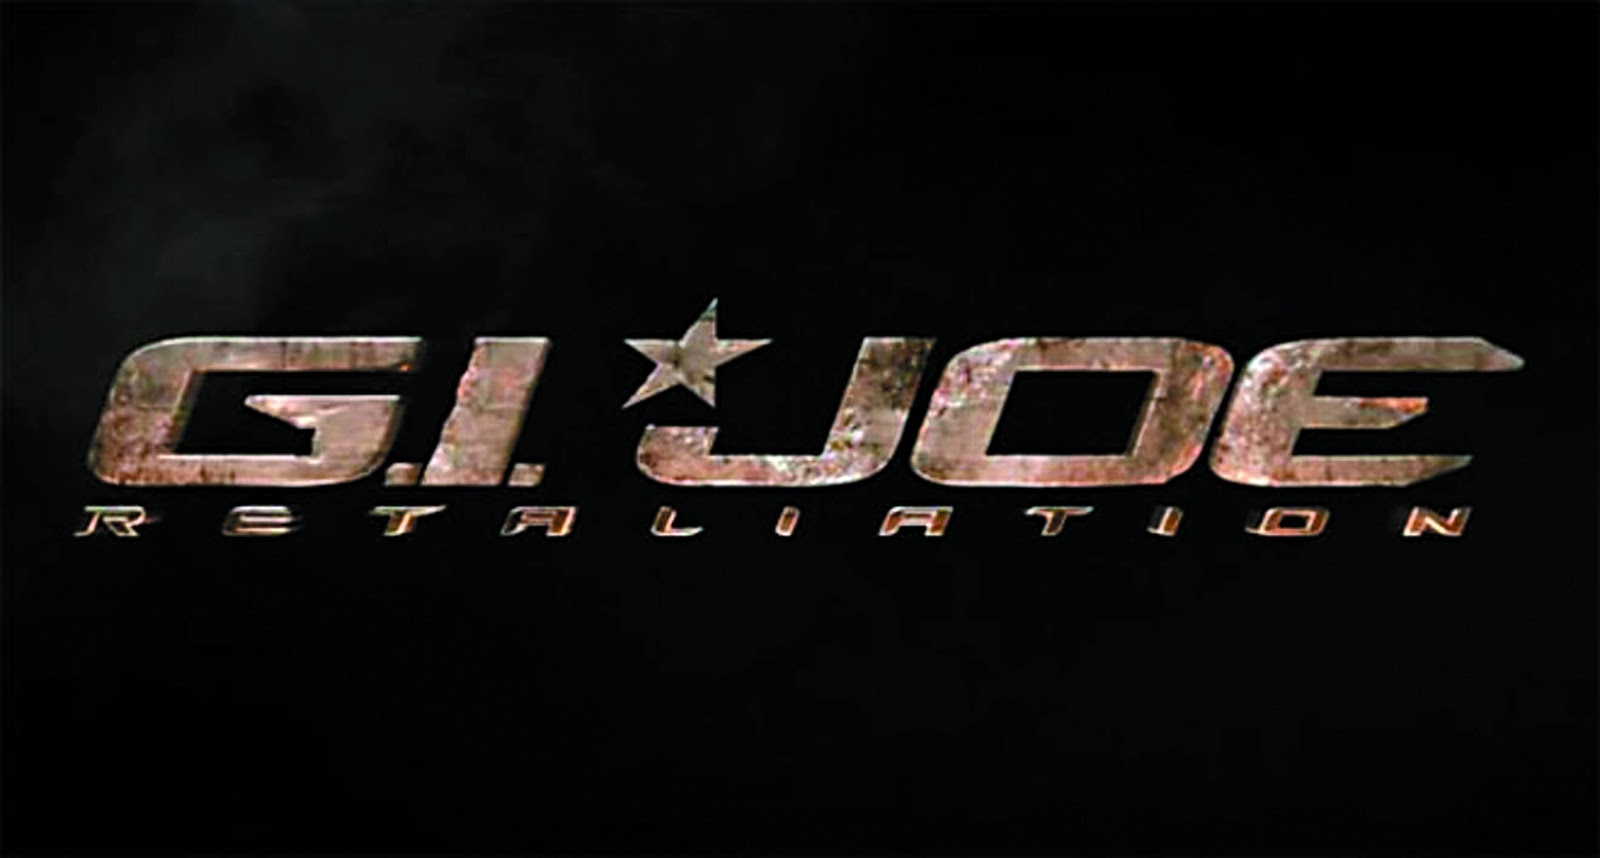 http://4.bp.blogspot.com/-rbU4Z-KdxZs/UVu8qpnOEbI/AAAAAAAAyTE/8RkurX6FMlQ/s1600/GI-Joe-Retaliation-Movie-Wallpaper-535817.jpg